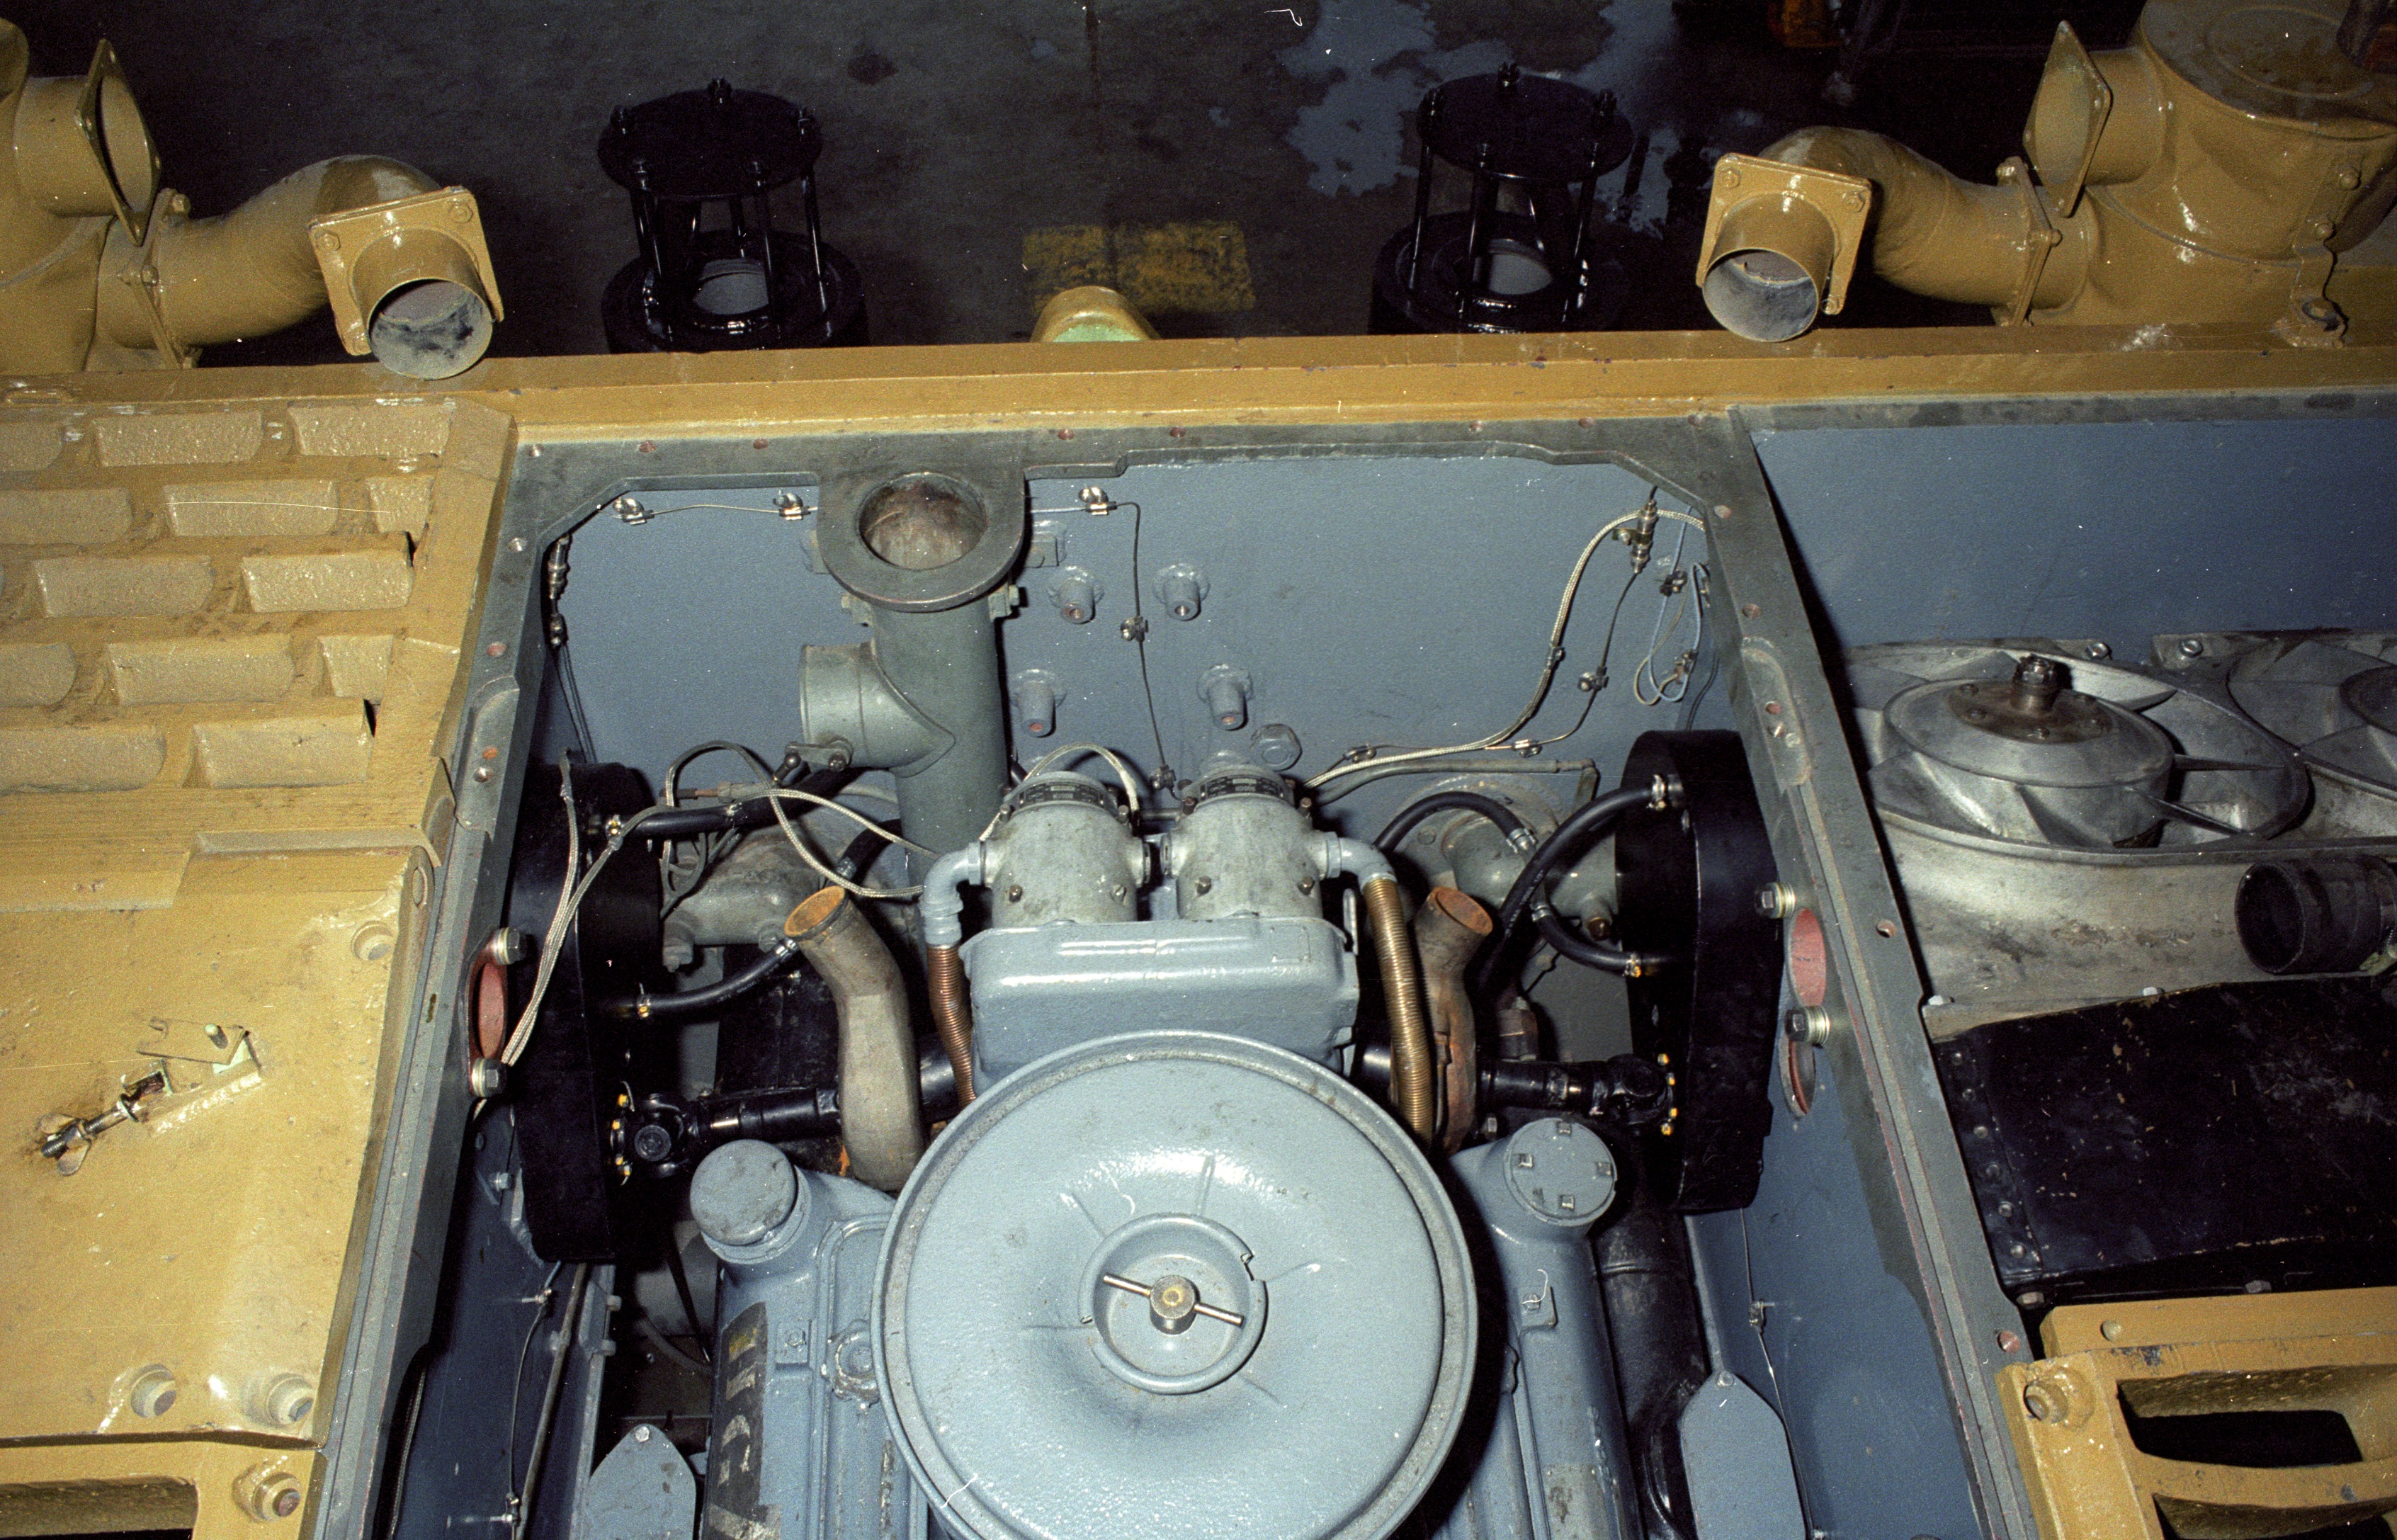 The stowage tube at the rear of the engine compartment